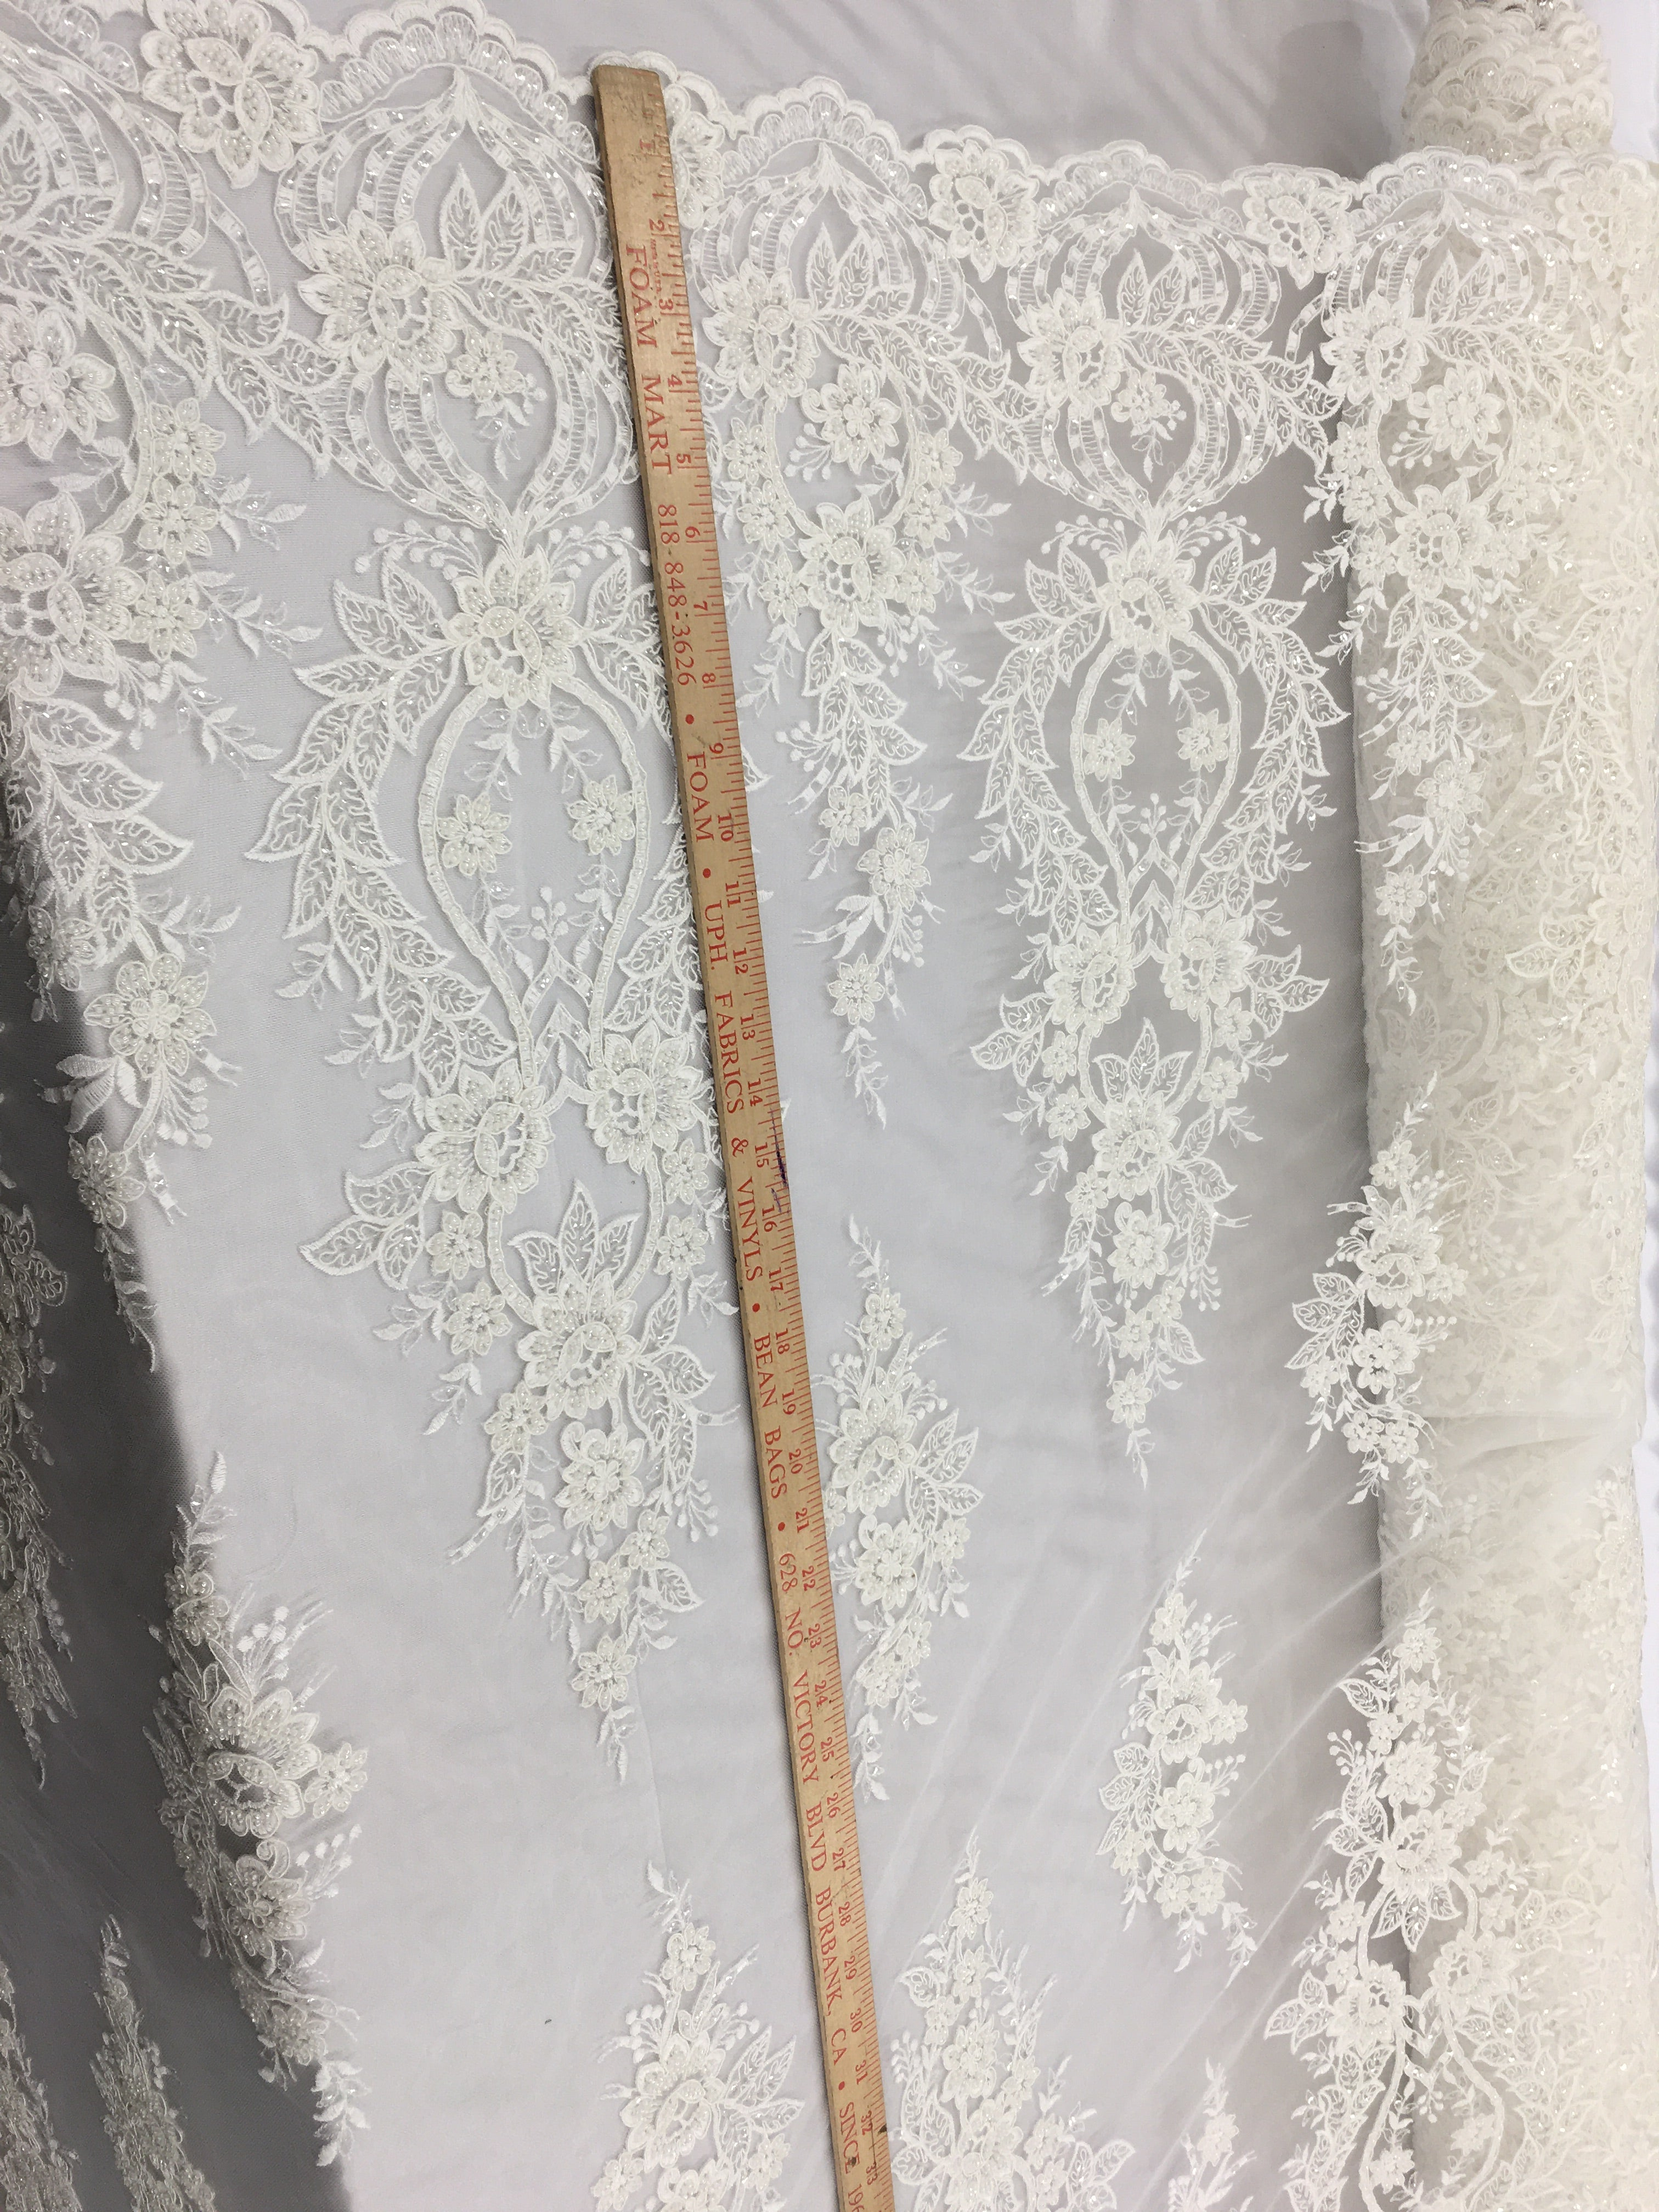 Lamp Designs Bridal Beaded Fabric By The Yard Ivory Lace Heavy Beads For Bridal Veil Flower Mesh Dress Top Wedding Decoration